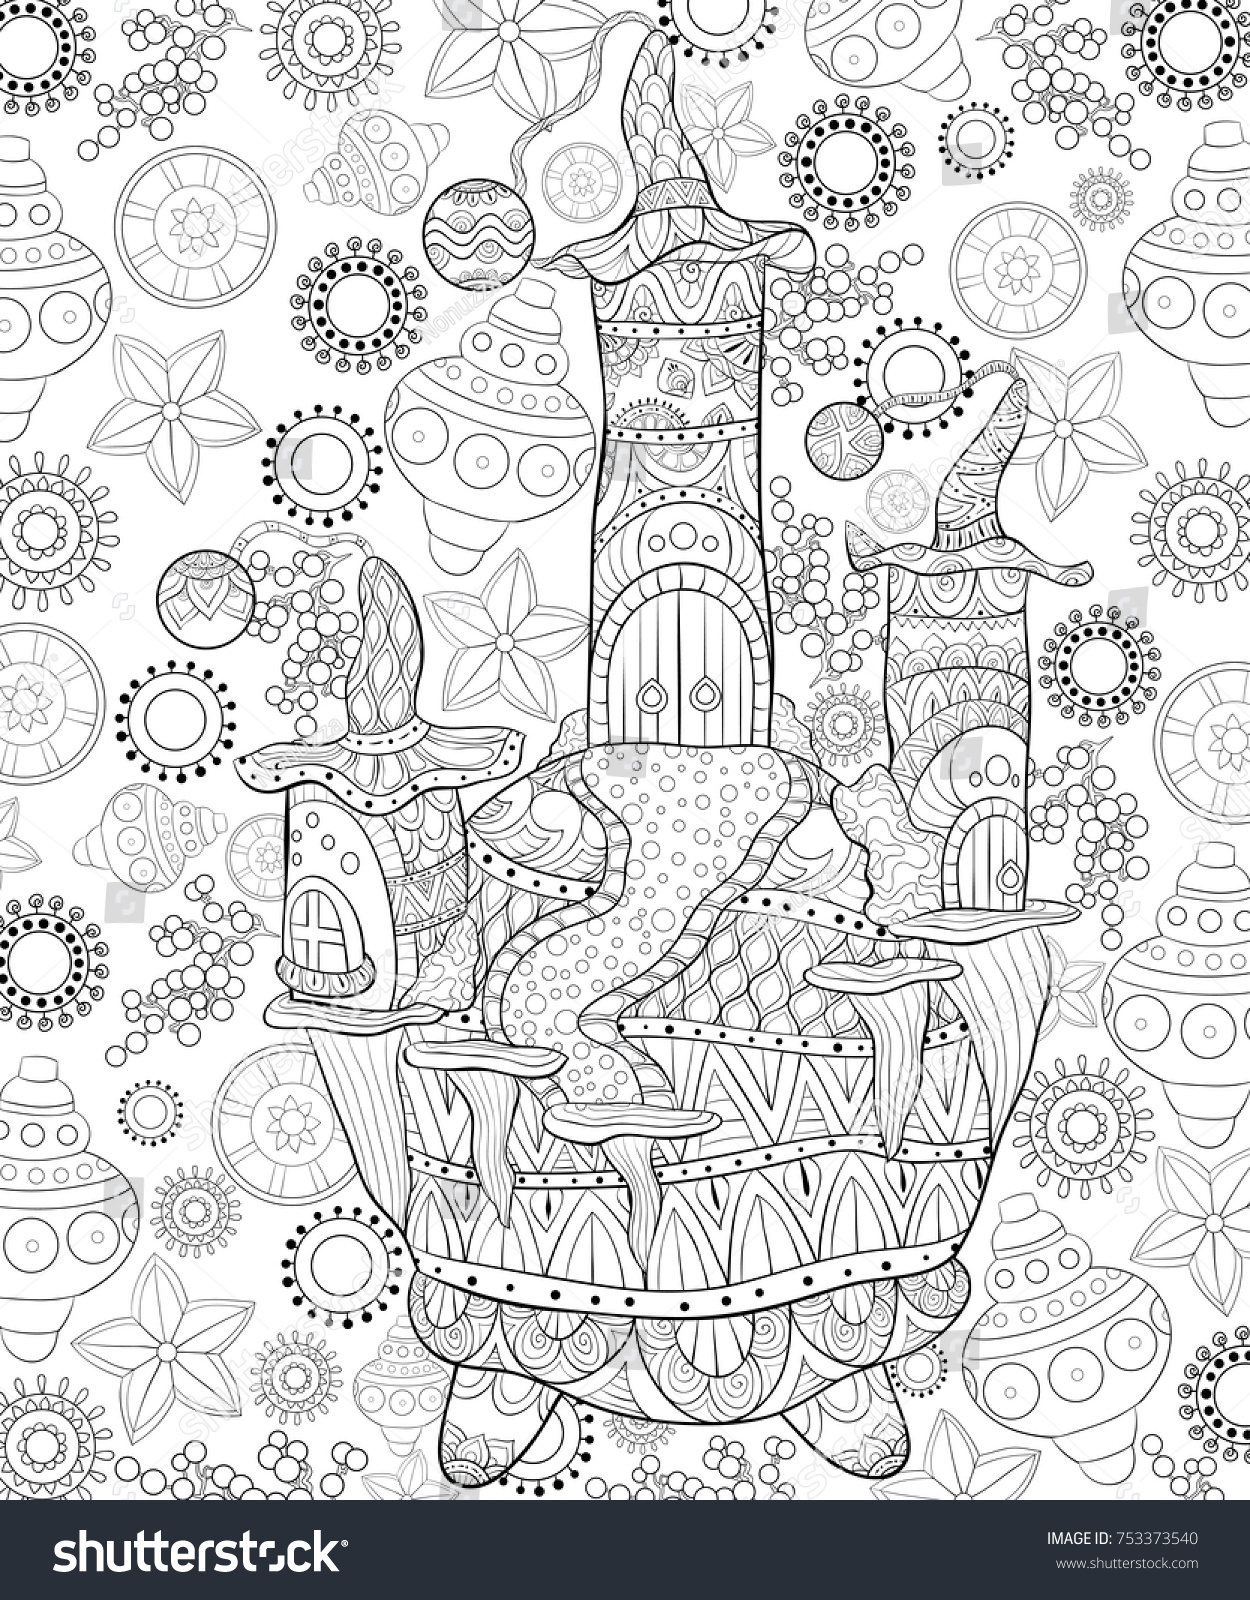 Santa Claus House Coloring Pages With Adult Pagebook Christmas Cute Illustration Stock Vector